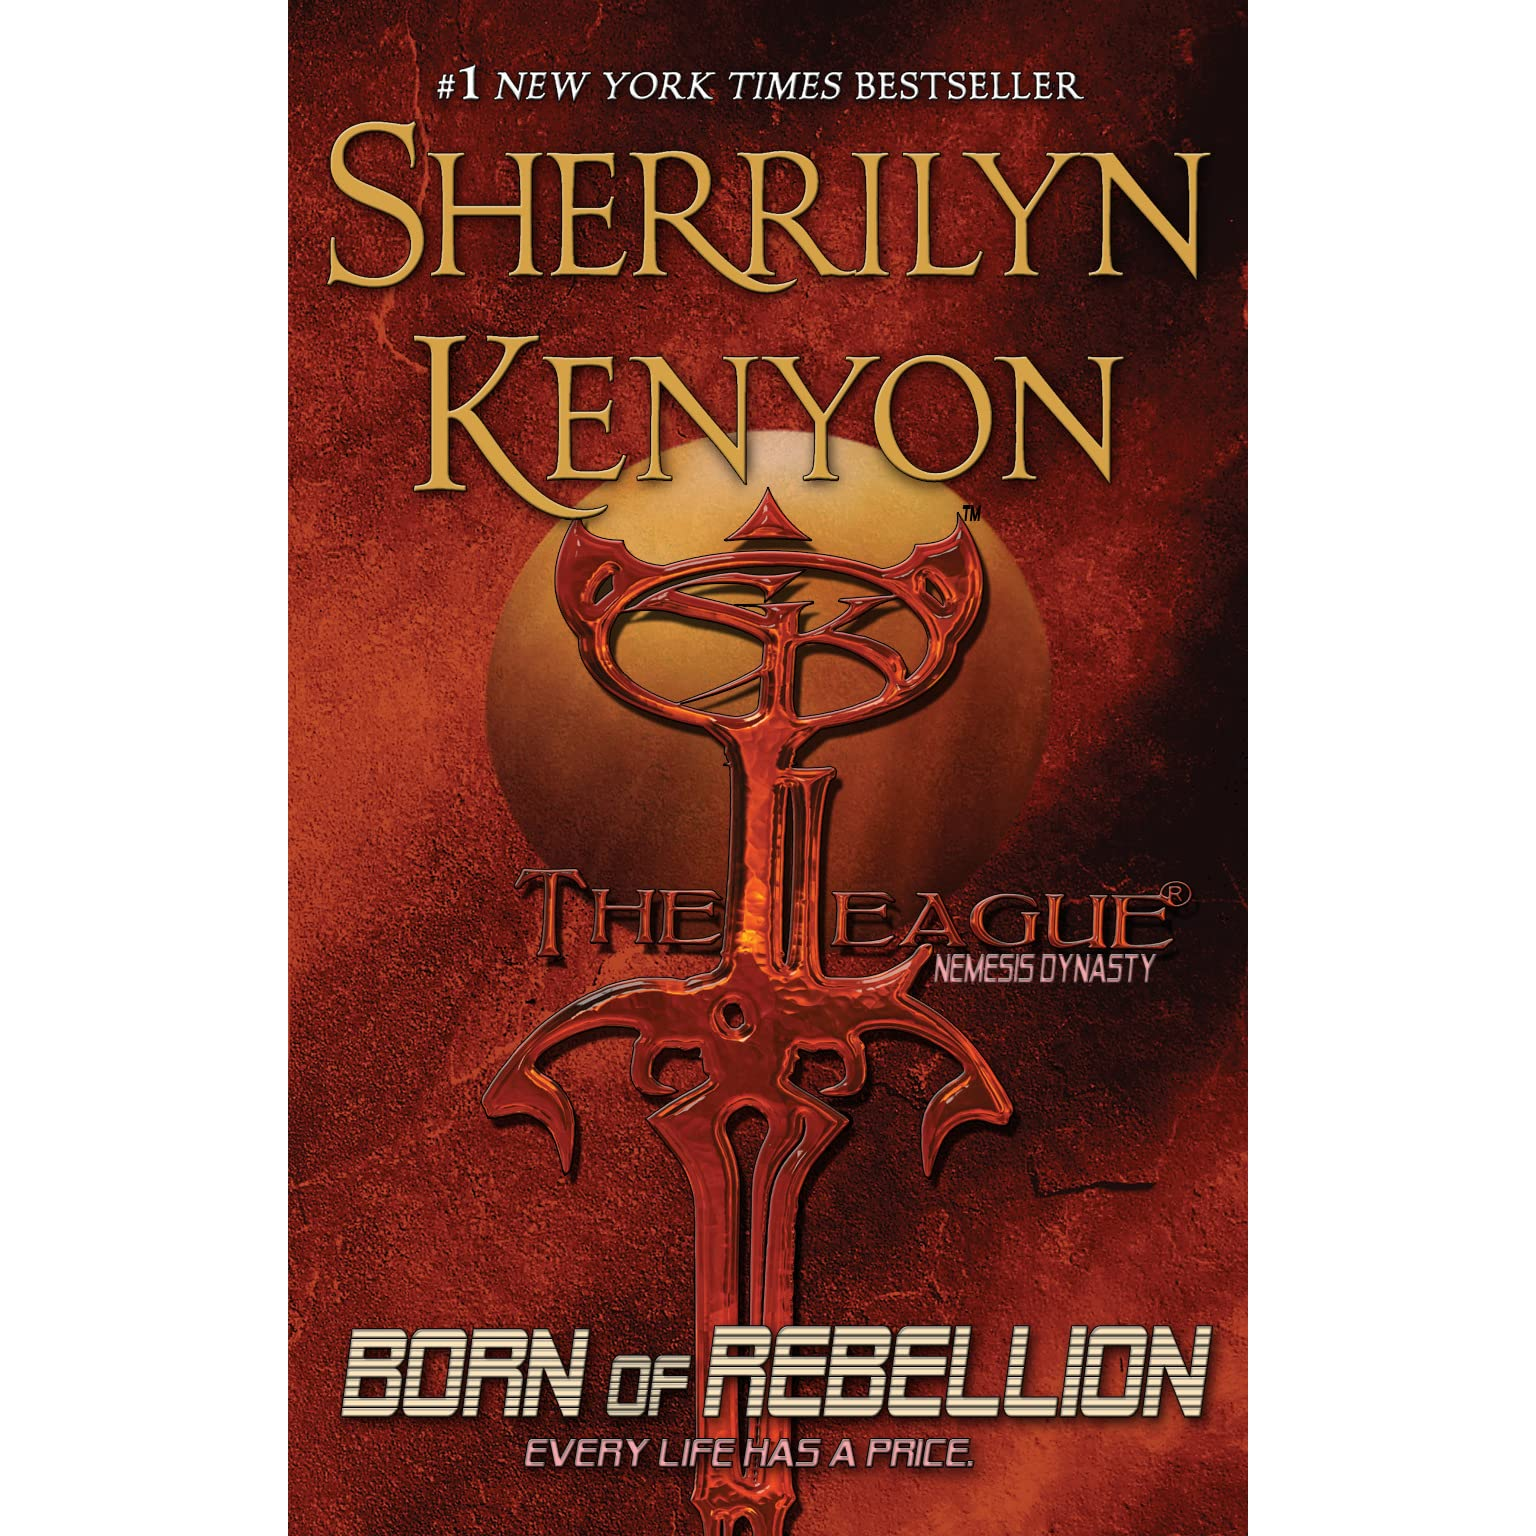 Sherrilyn Kenyon Epub